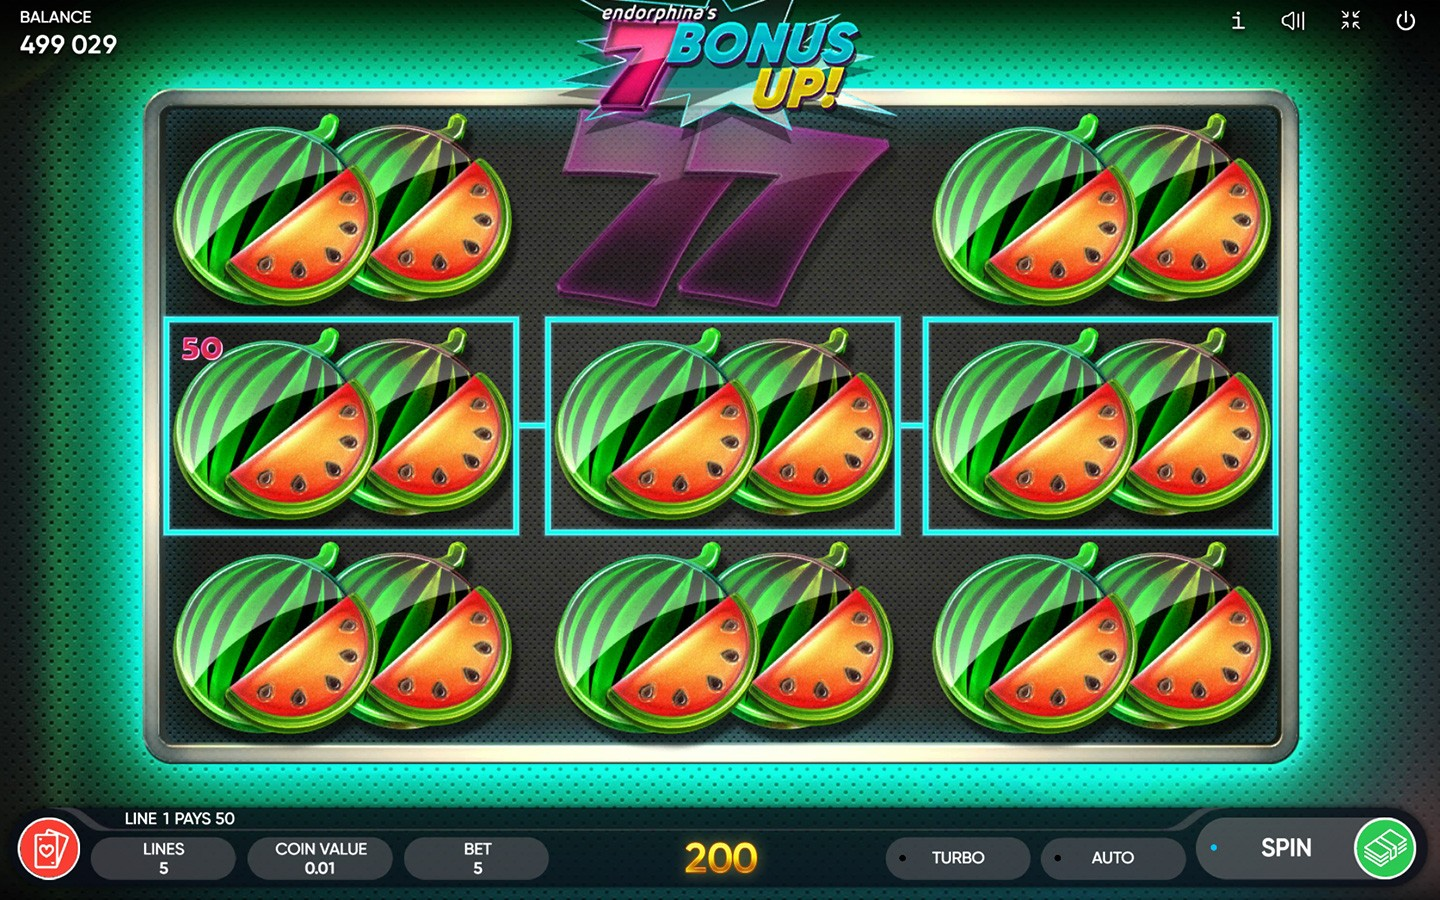 NEXT-GEN FRUIT SLOTS OF 2020 | Play 7 BONUS UP! SLOT now